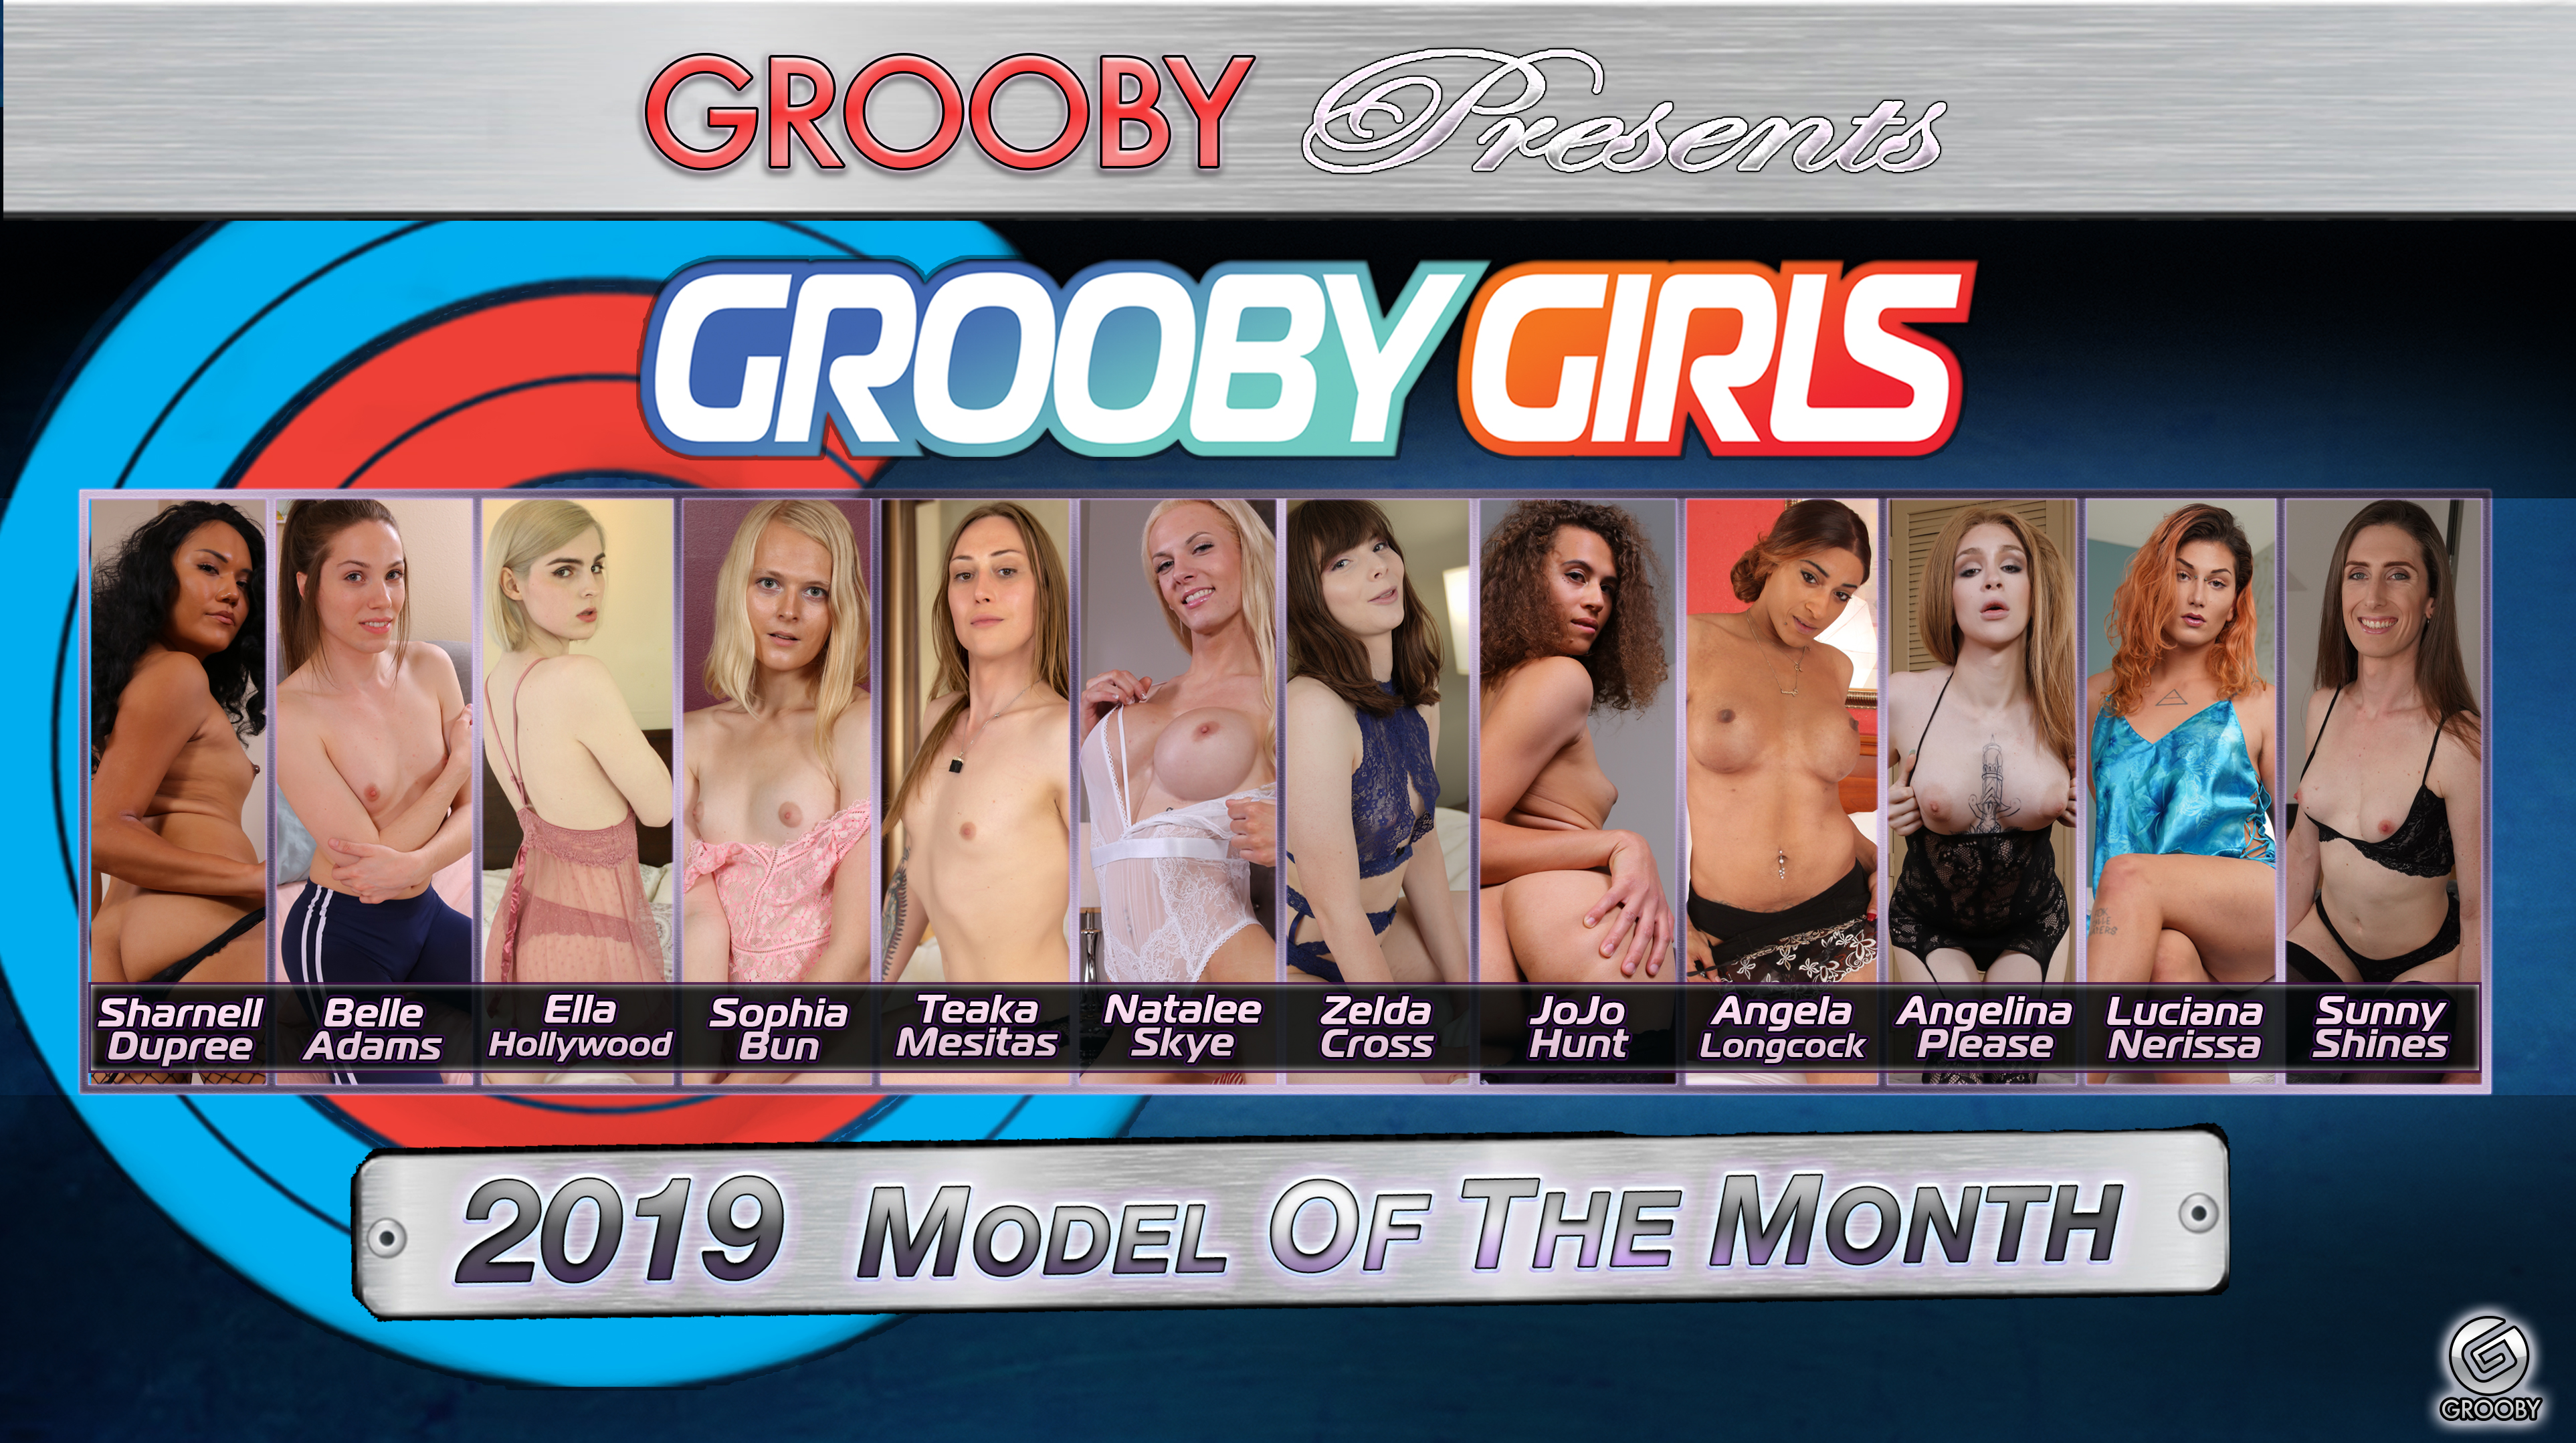 GroobyGirls 2019 Model of the Month DVD Trailer